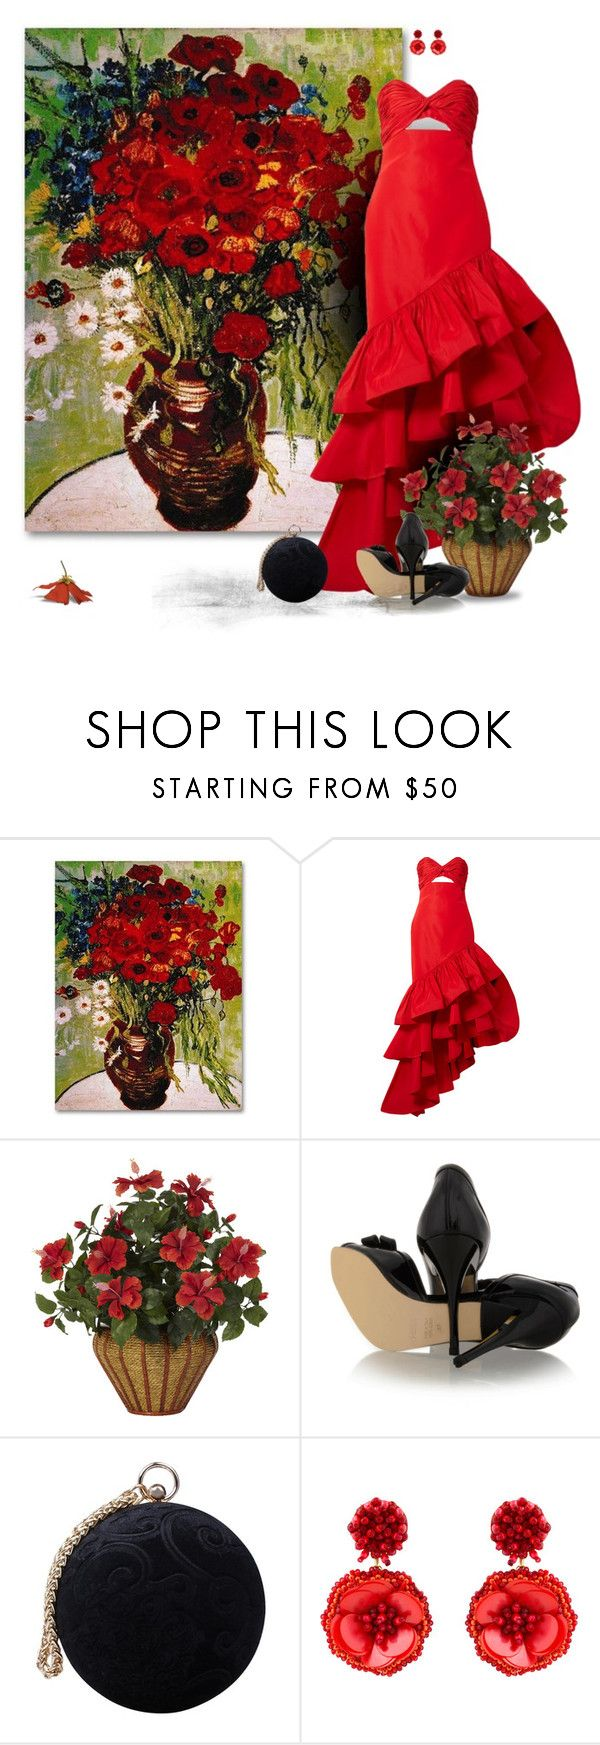 """Red Gown"" by leegal57 ❤ liked on Polyvore featuring Johanna Ortiz, Nearly Natural, Fendi, Carvela and Mignonne Gavigan"